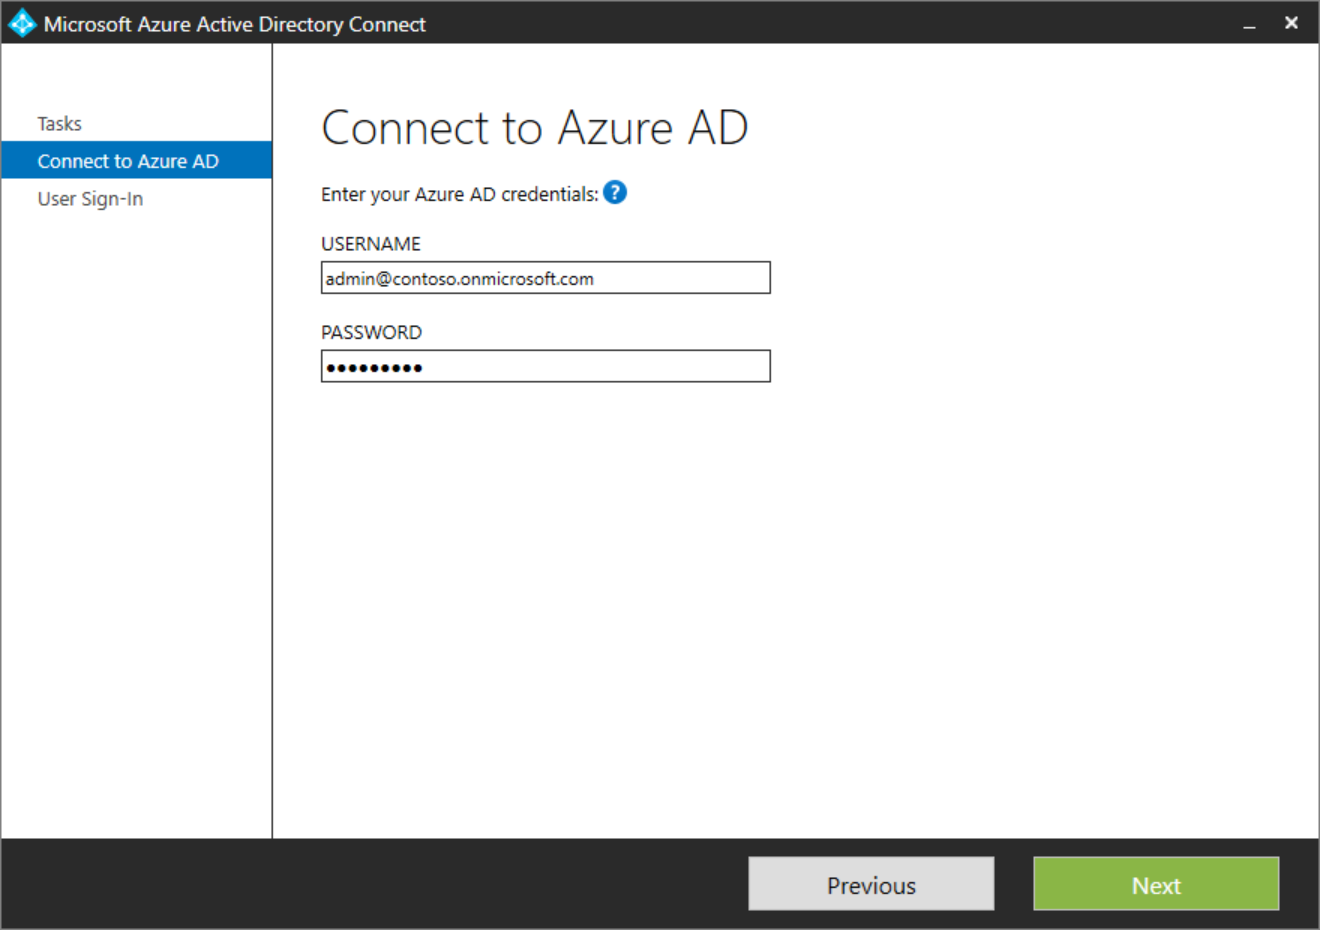 Azure AD Connect: User sign-in | Microsoft Docs